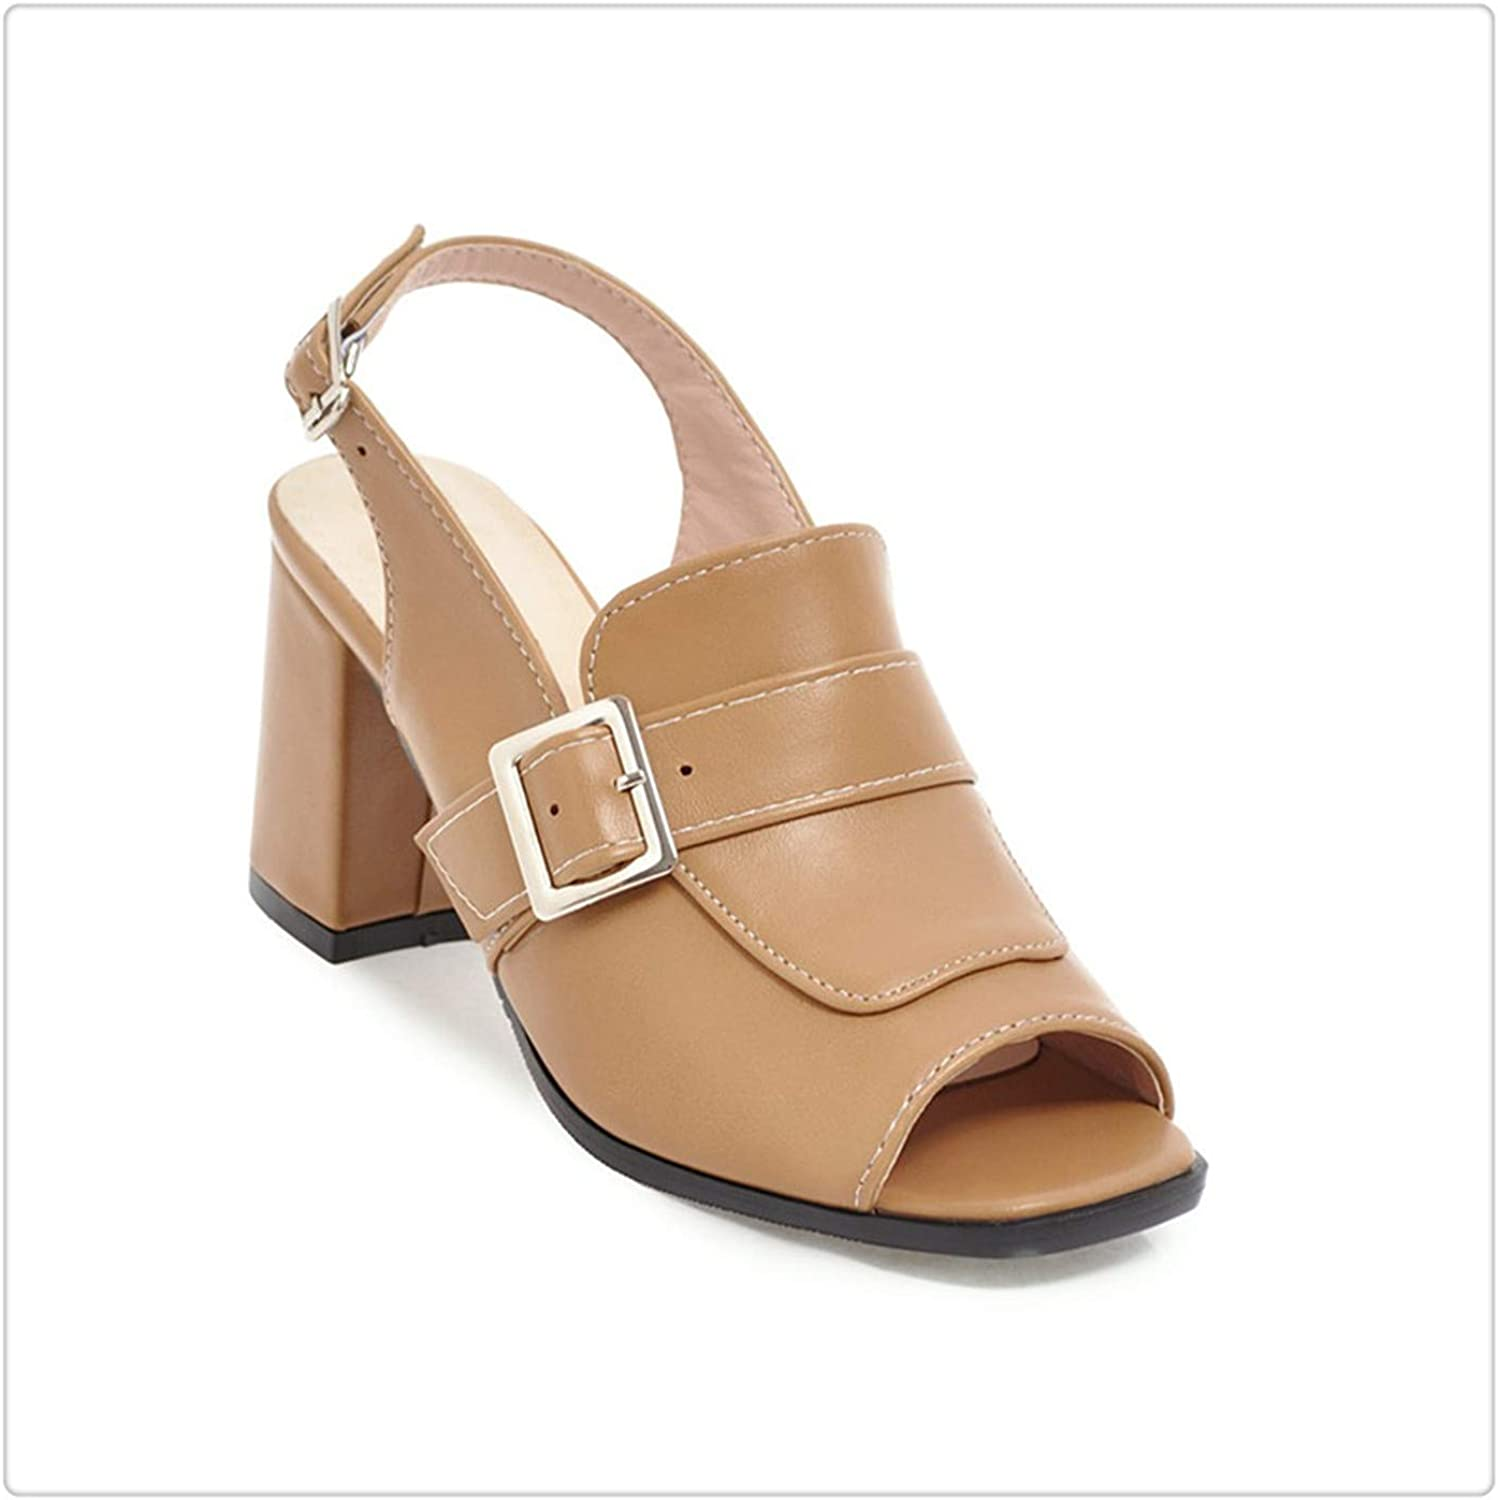 ZXCVB& Woman Fashion squareHigh Heels Sandals Women Summer Open Toe shoes 2019 Womens Female Buckle Slingback Casual Party Sandal Apricot 10